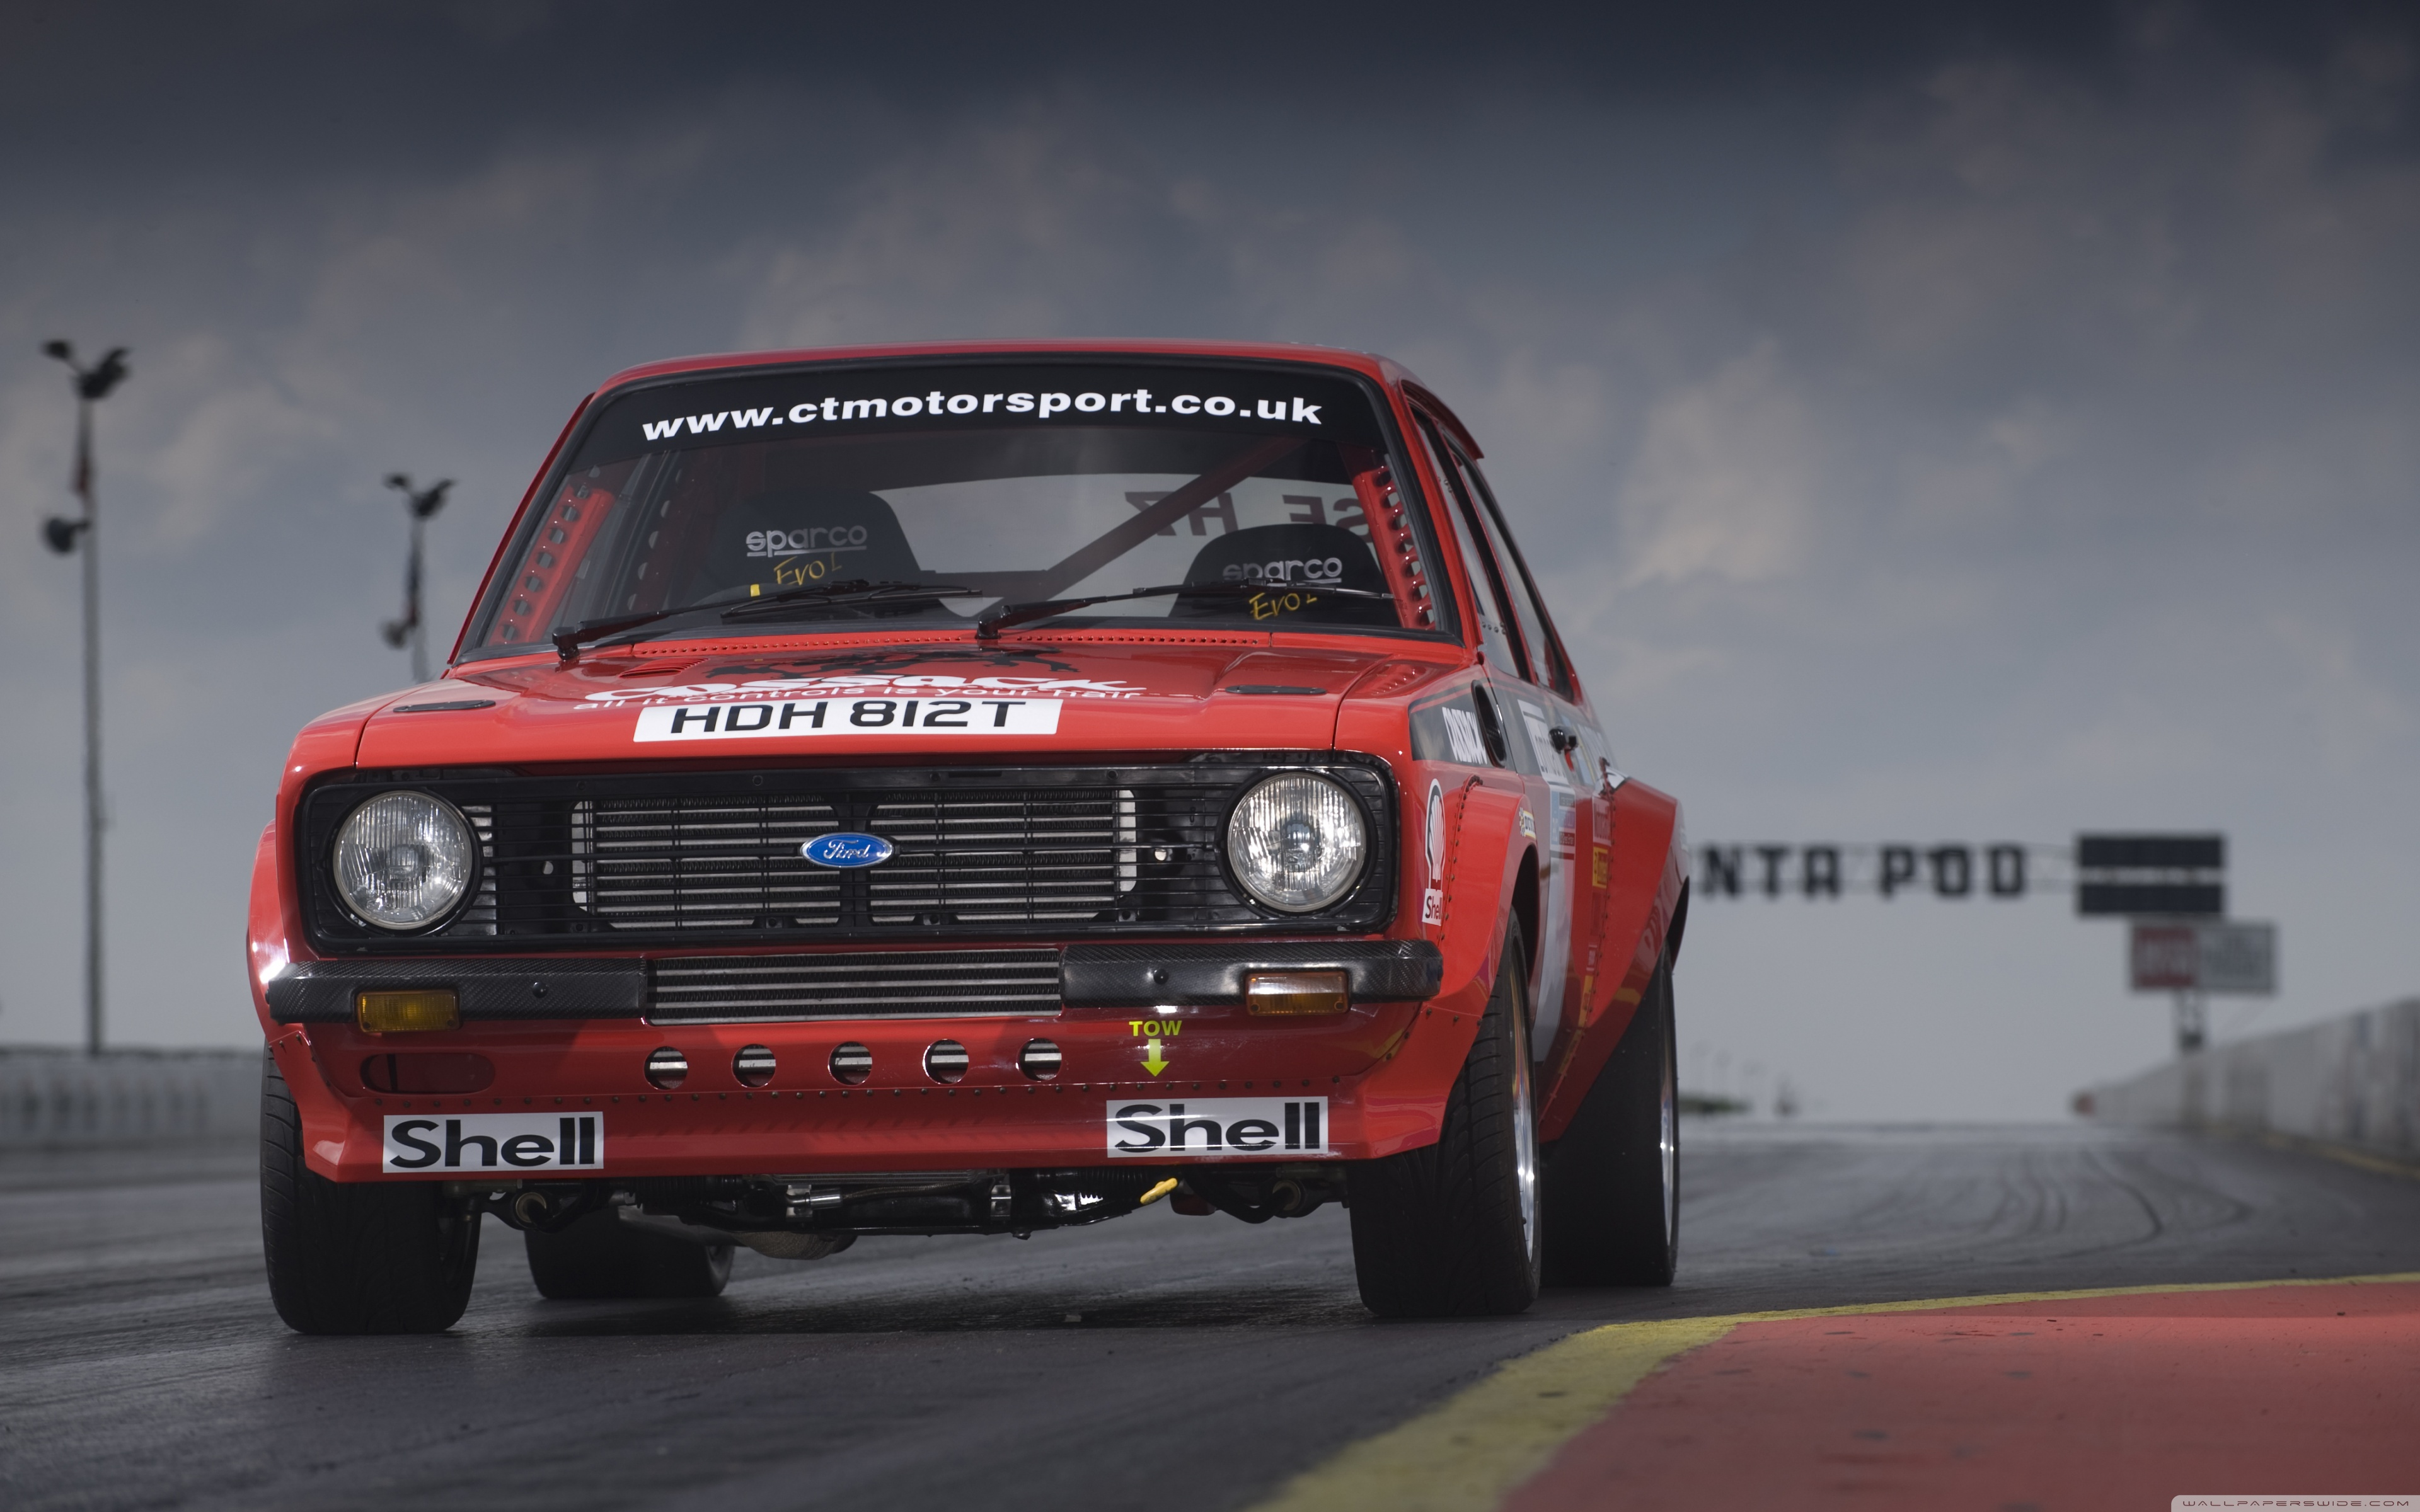 3840x2400 - Ford Escort Wallpapers 5